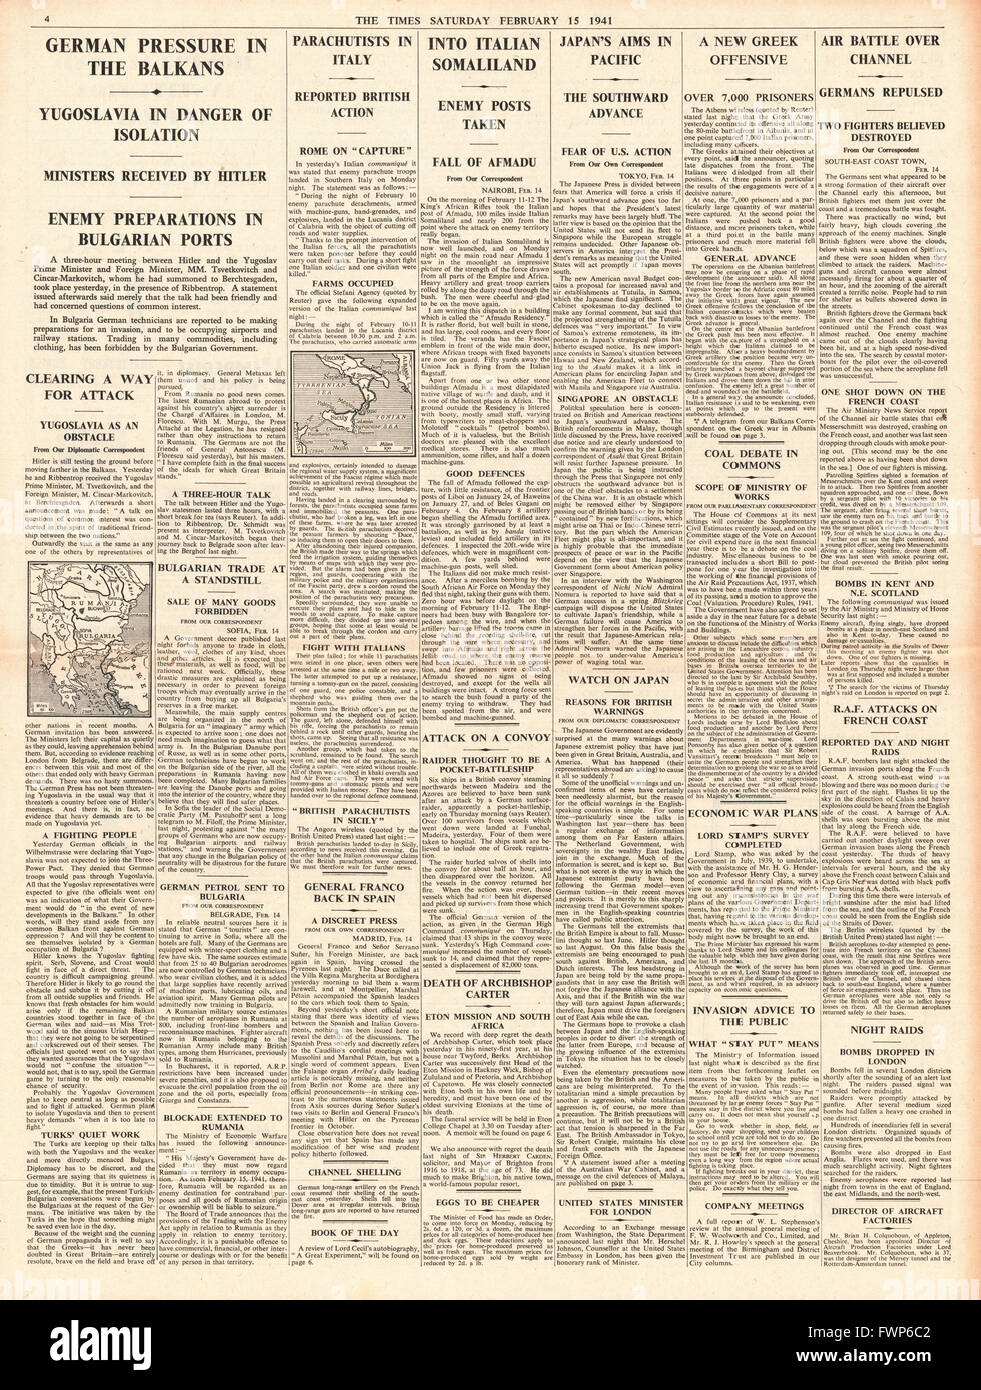 1941 page 4 The Times German pressure in the Balkans and Imperial Forces enter Italian Somaliland - Stock Image